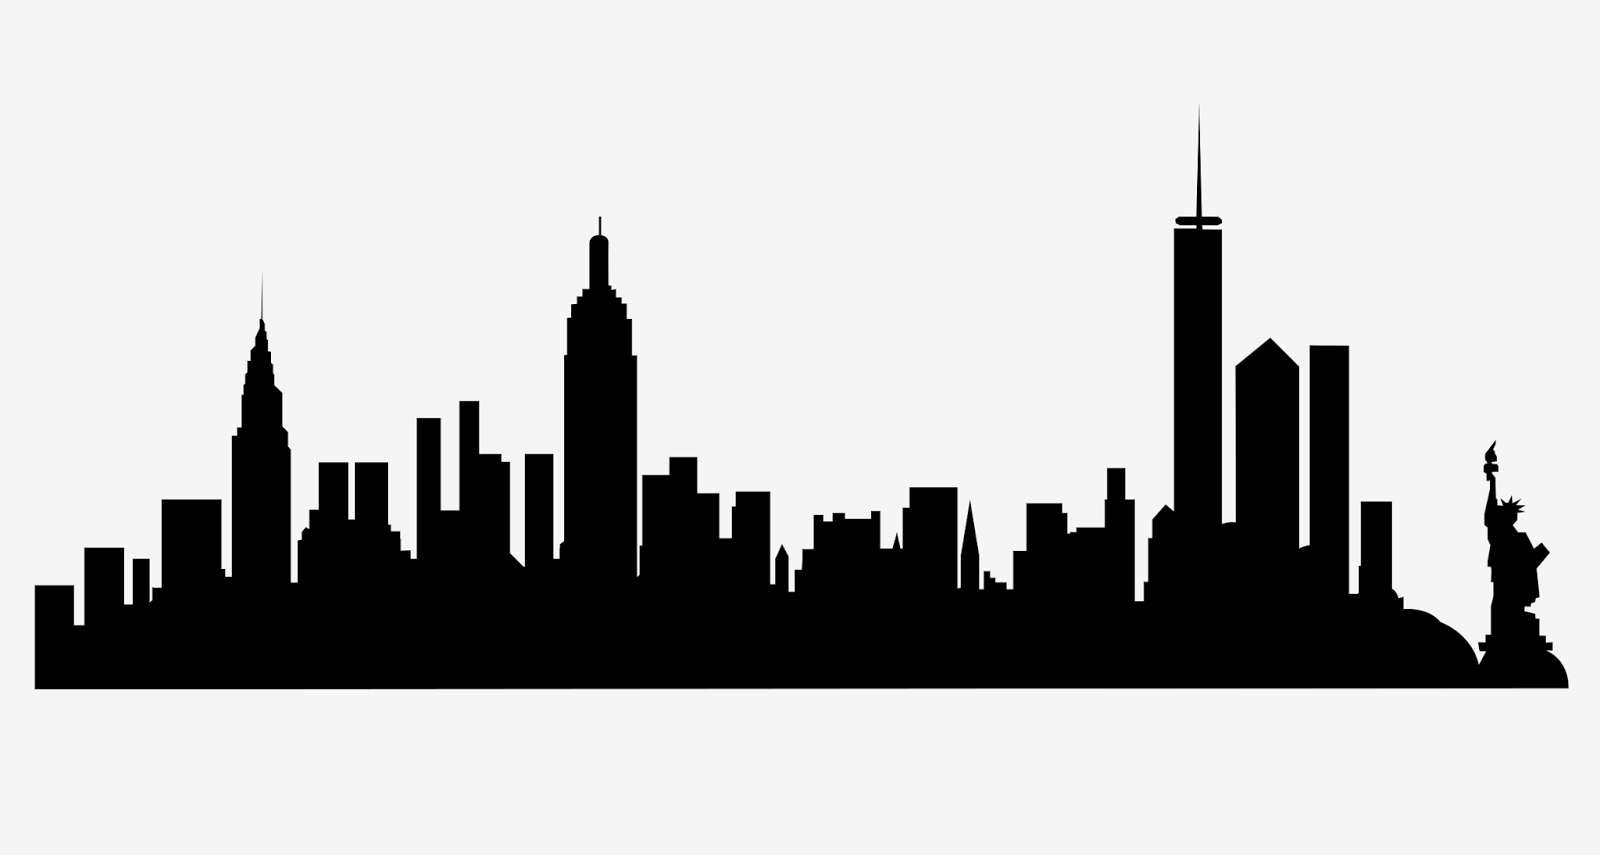 1600x855 New York City Png Skyline Transparent New York City Skyline.png